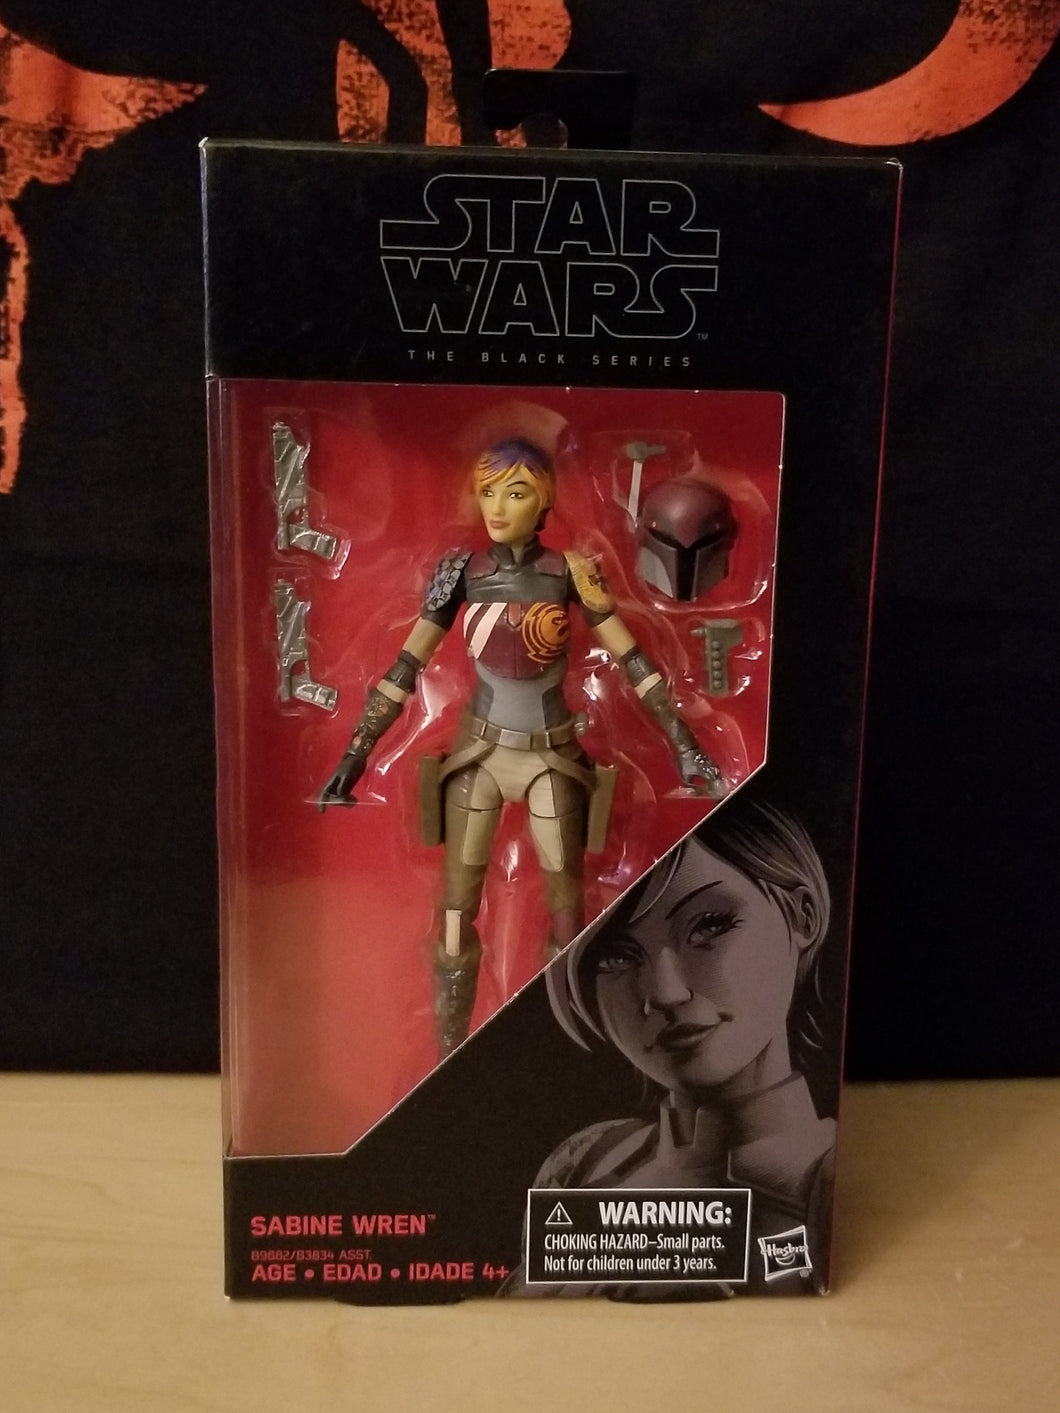 Sabine Wren #33 - The Black Series (6-inch figure)